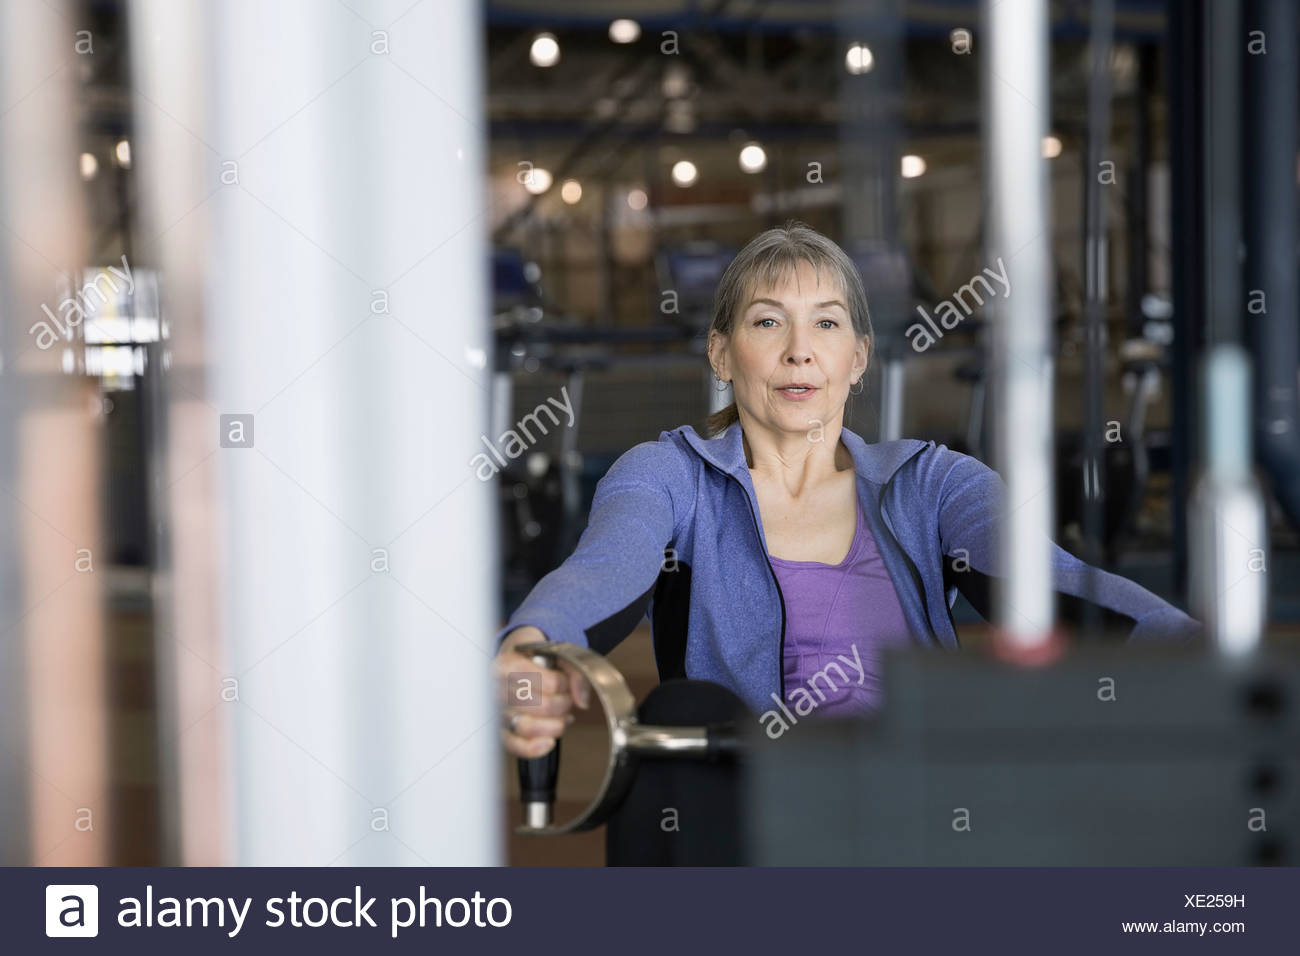 Woman using exercise machine at gym Photo Stock